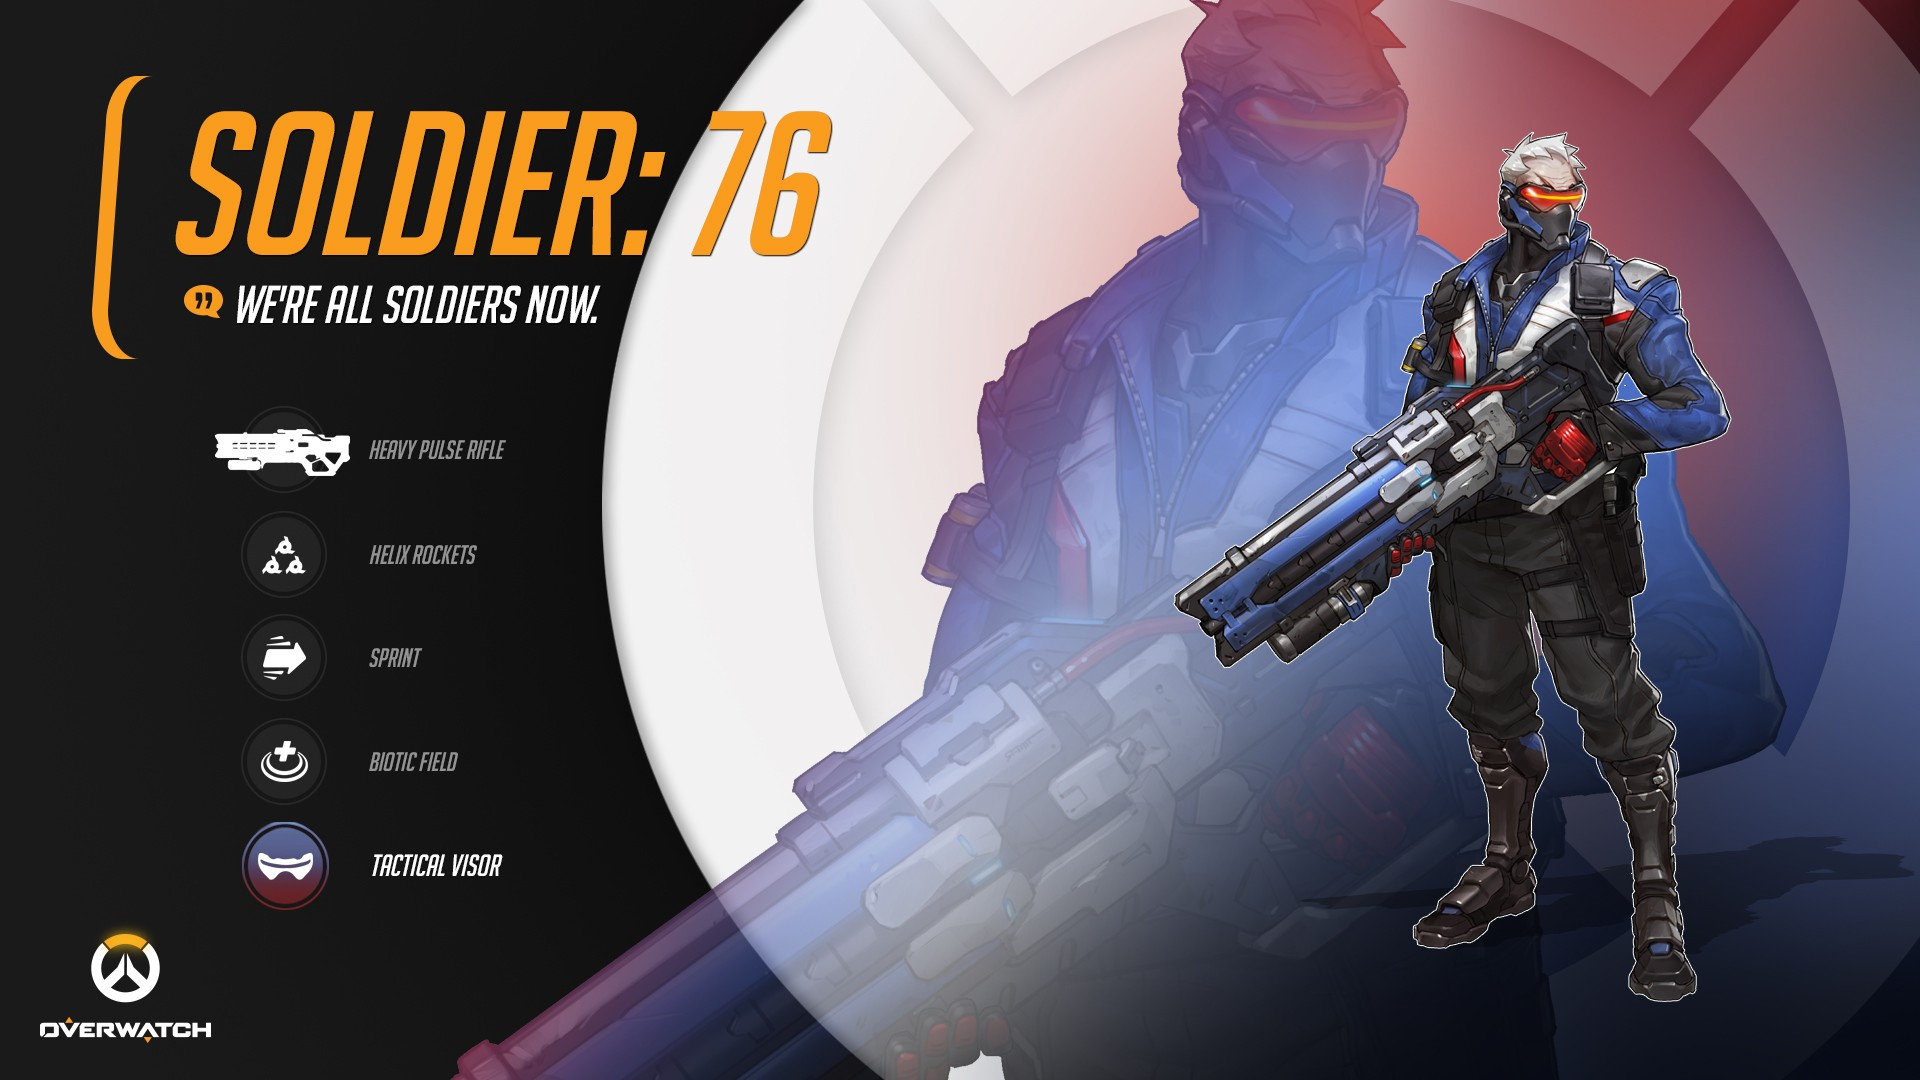 soldier-76-blizzard-entertainment-overwatch-video-games-1920x1080.jpg